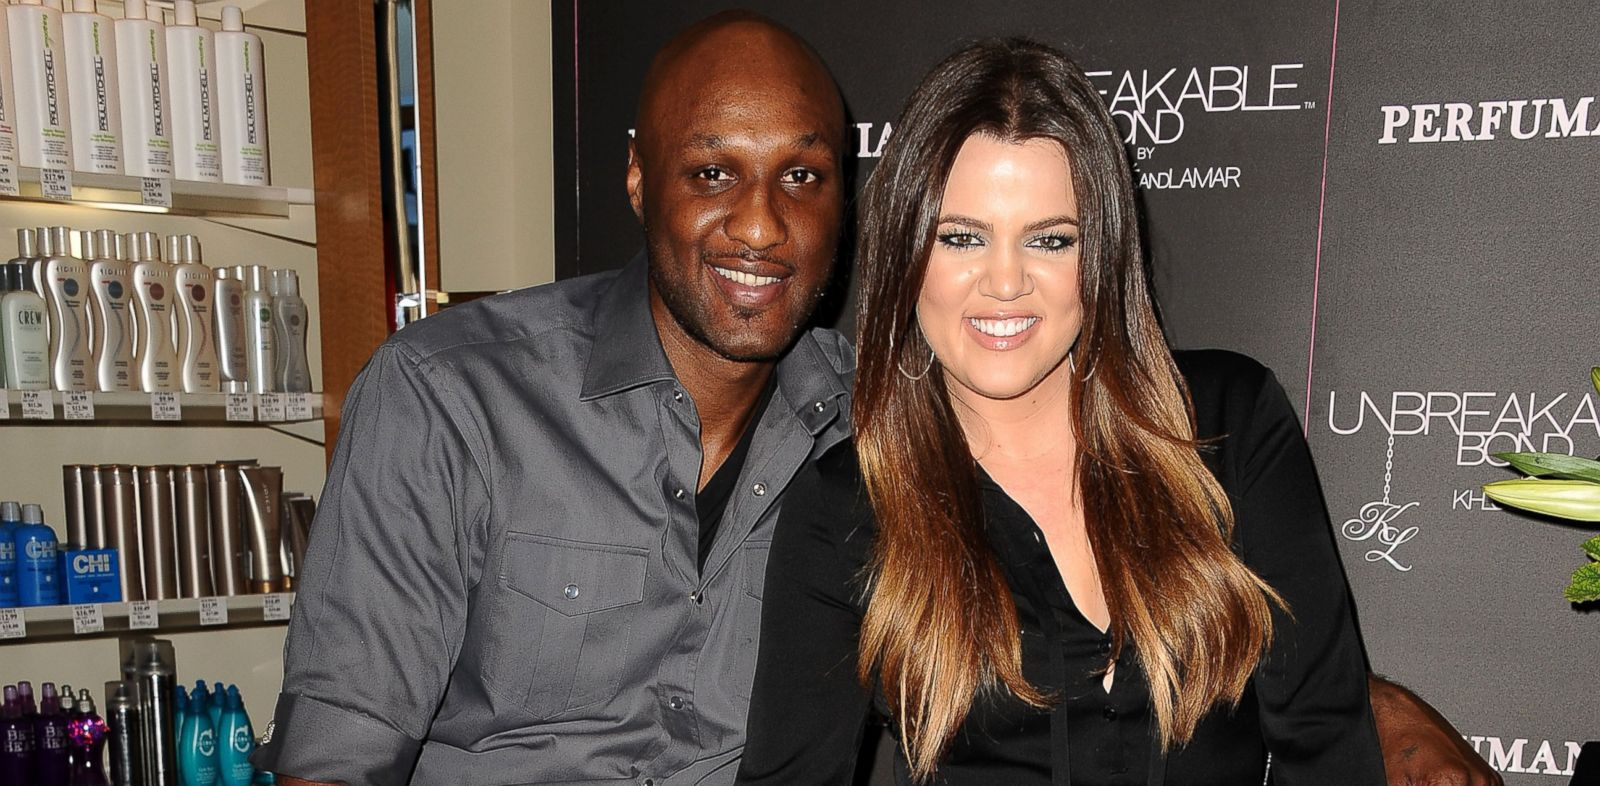 PHOTO: In this file photo, Lamar Odom, left, and Khloe Kardashian, right, are pictured in Orange, Calif. on Jun. 7, 2012.